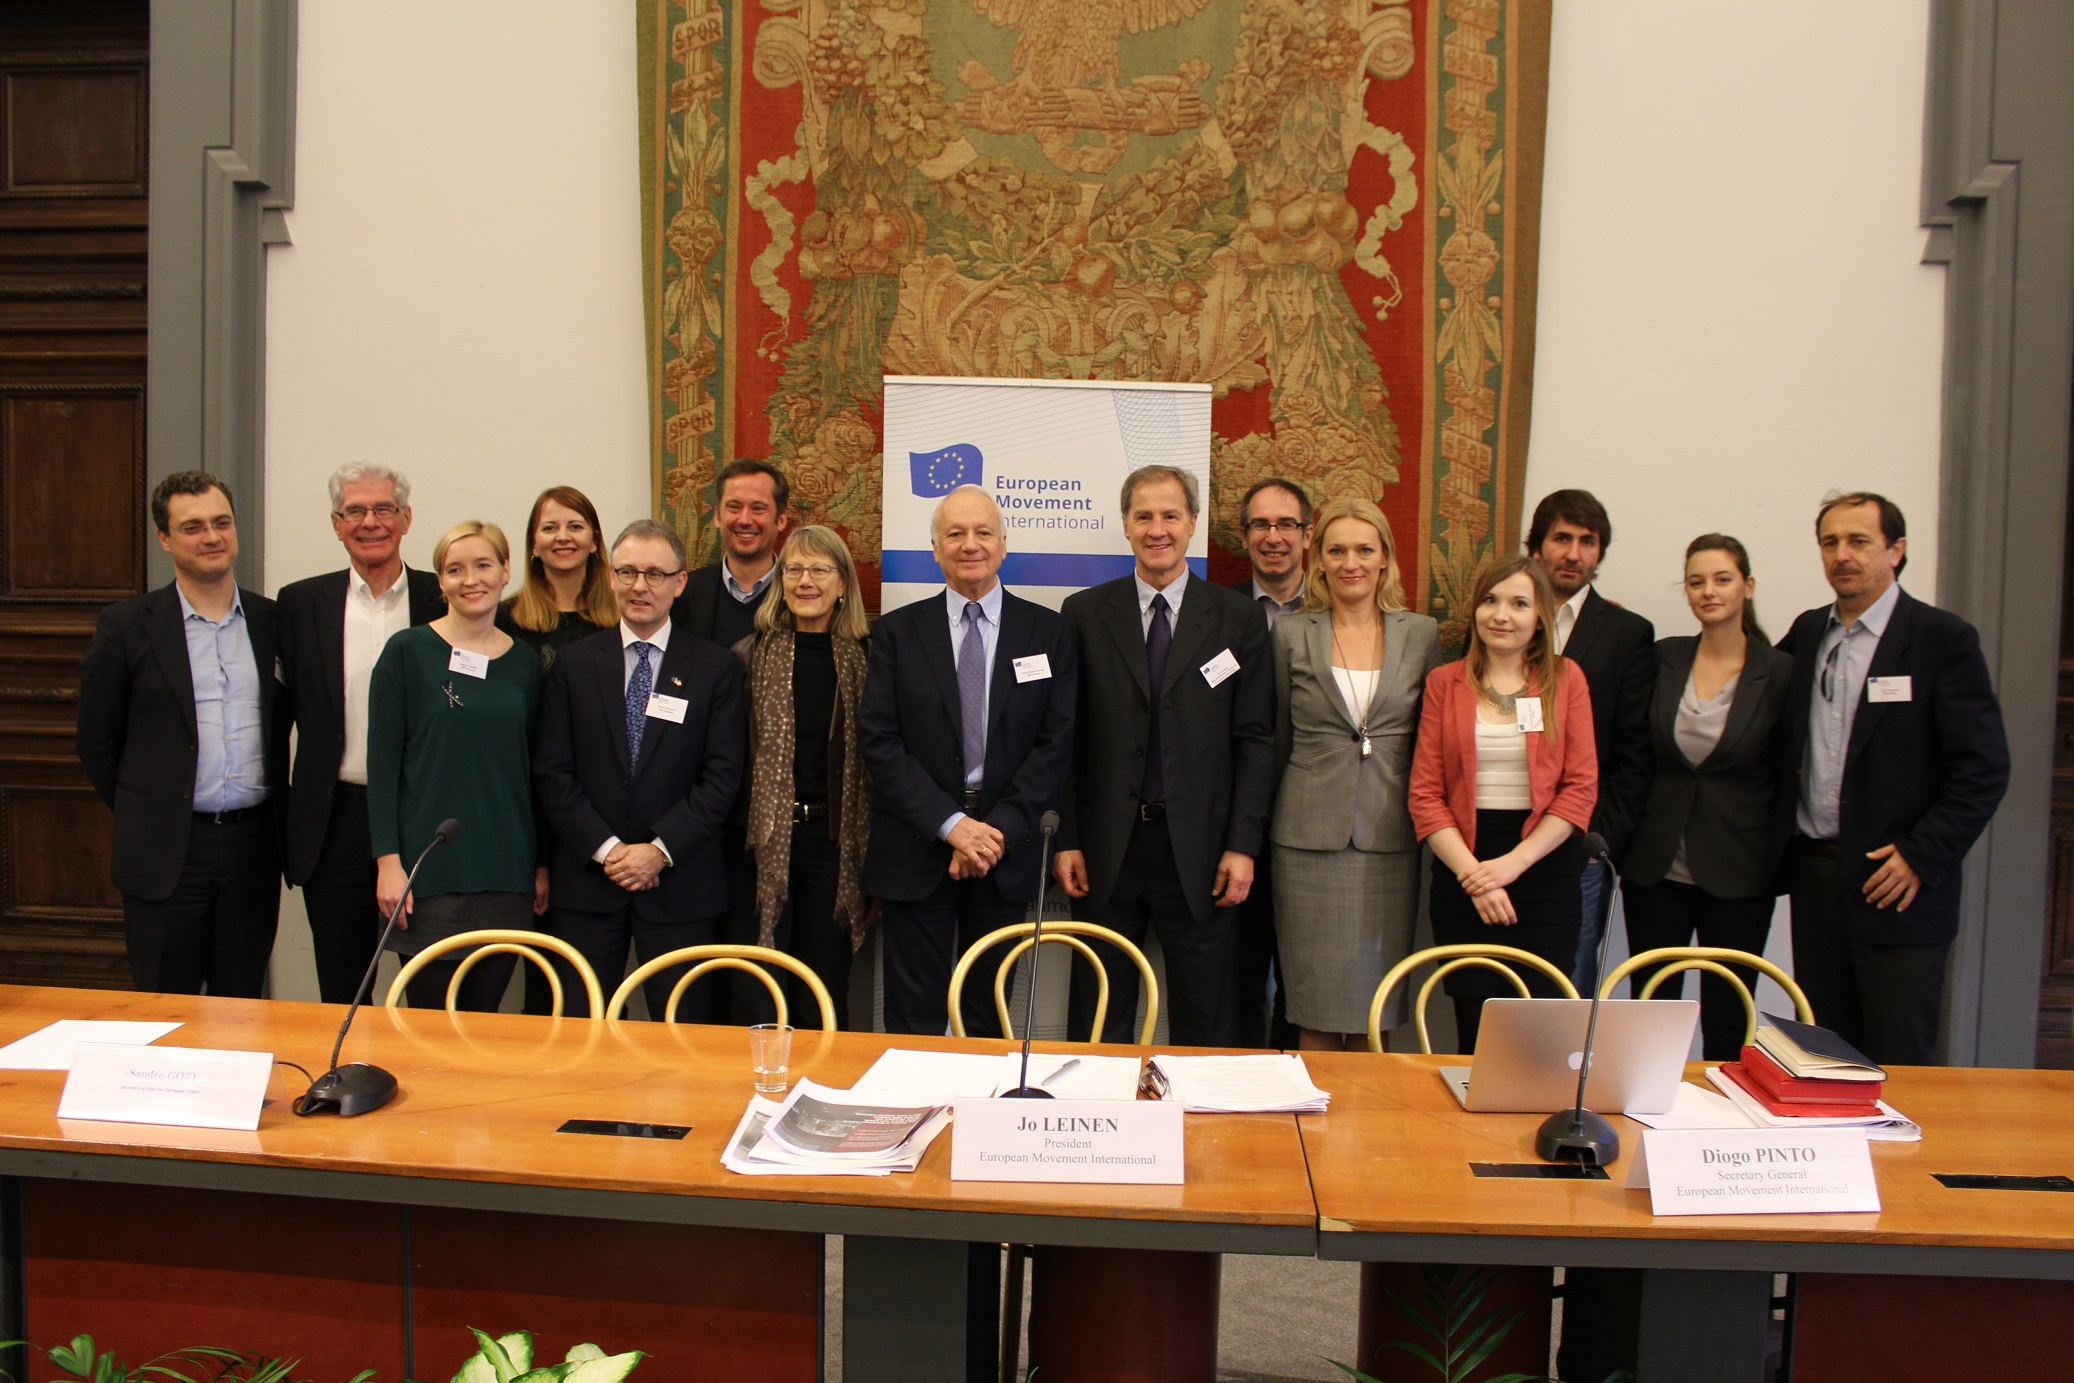 European Movement International elects new Board and decides political future